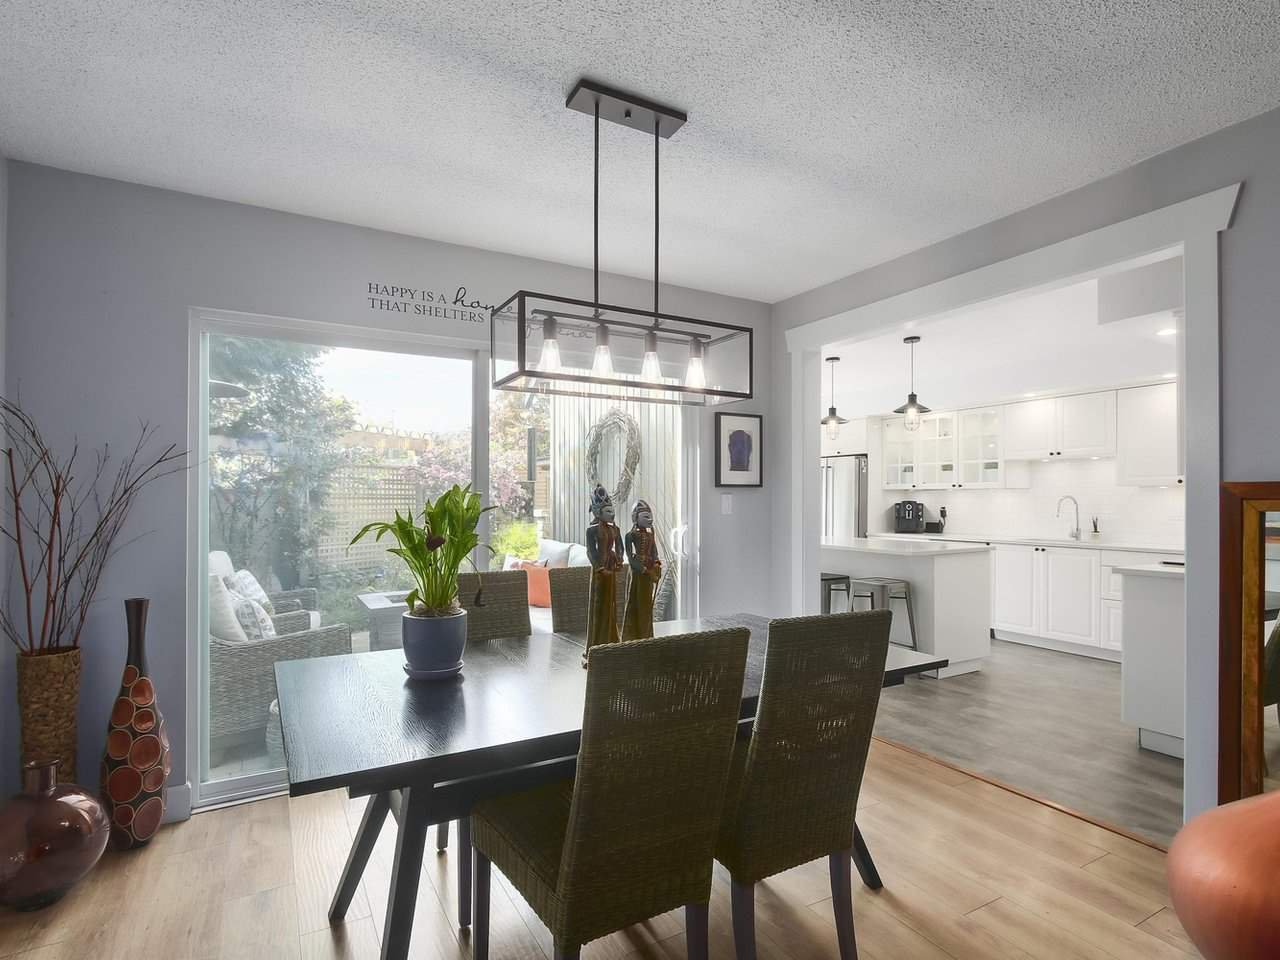 Photo 5: Photos: 4827 CENTRAL AVENUE in Delta: Hawthorne Townhouse for sale (Ladner)  : MLS®# R2391825